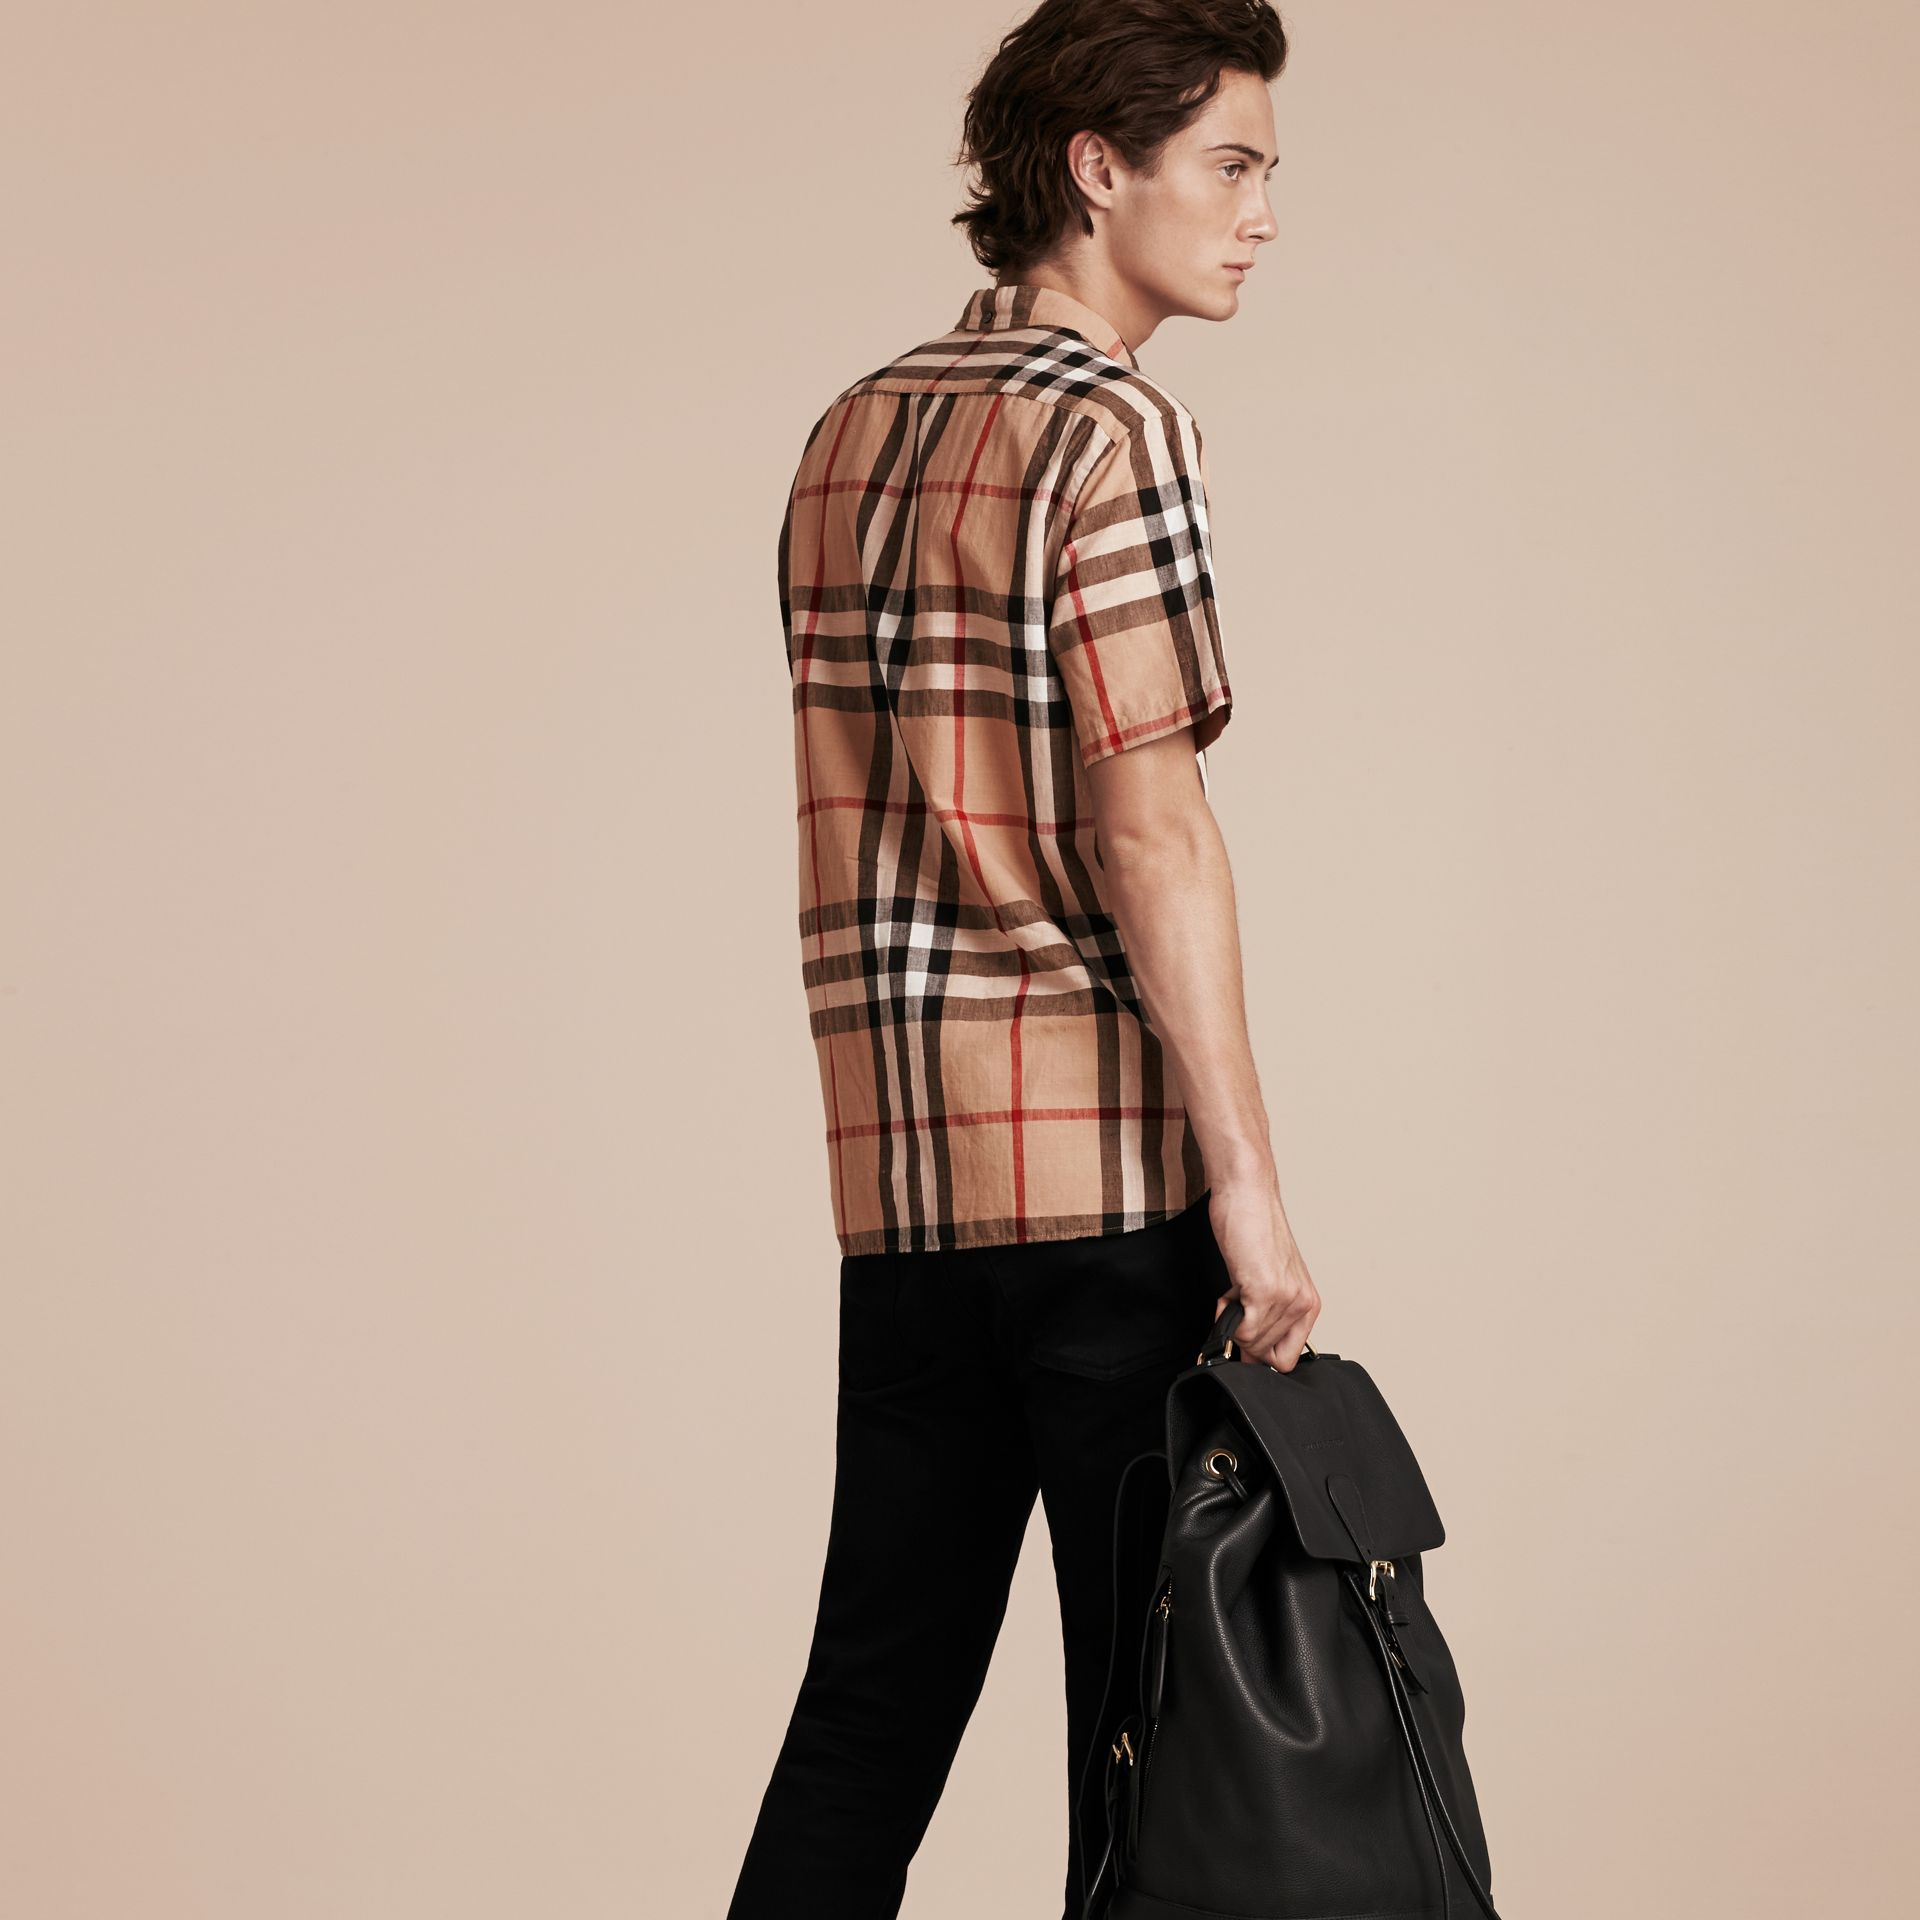 Camel Short-sleeved Check Linen Cotton Shirt Camel - gallery image 2